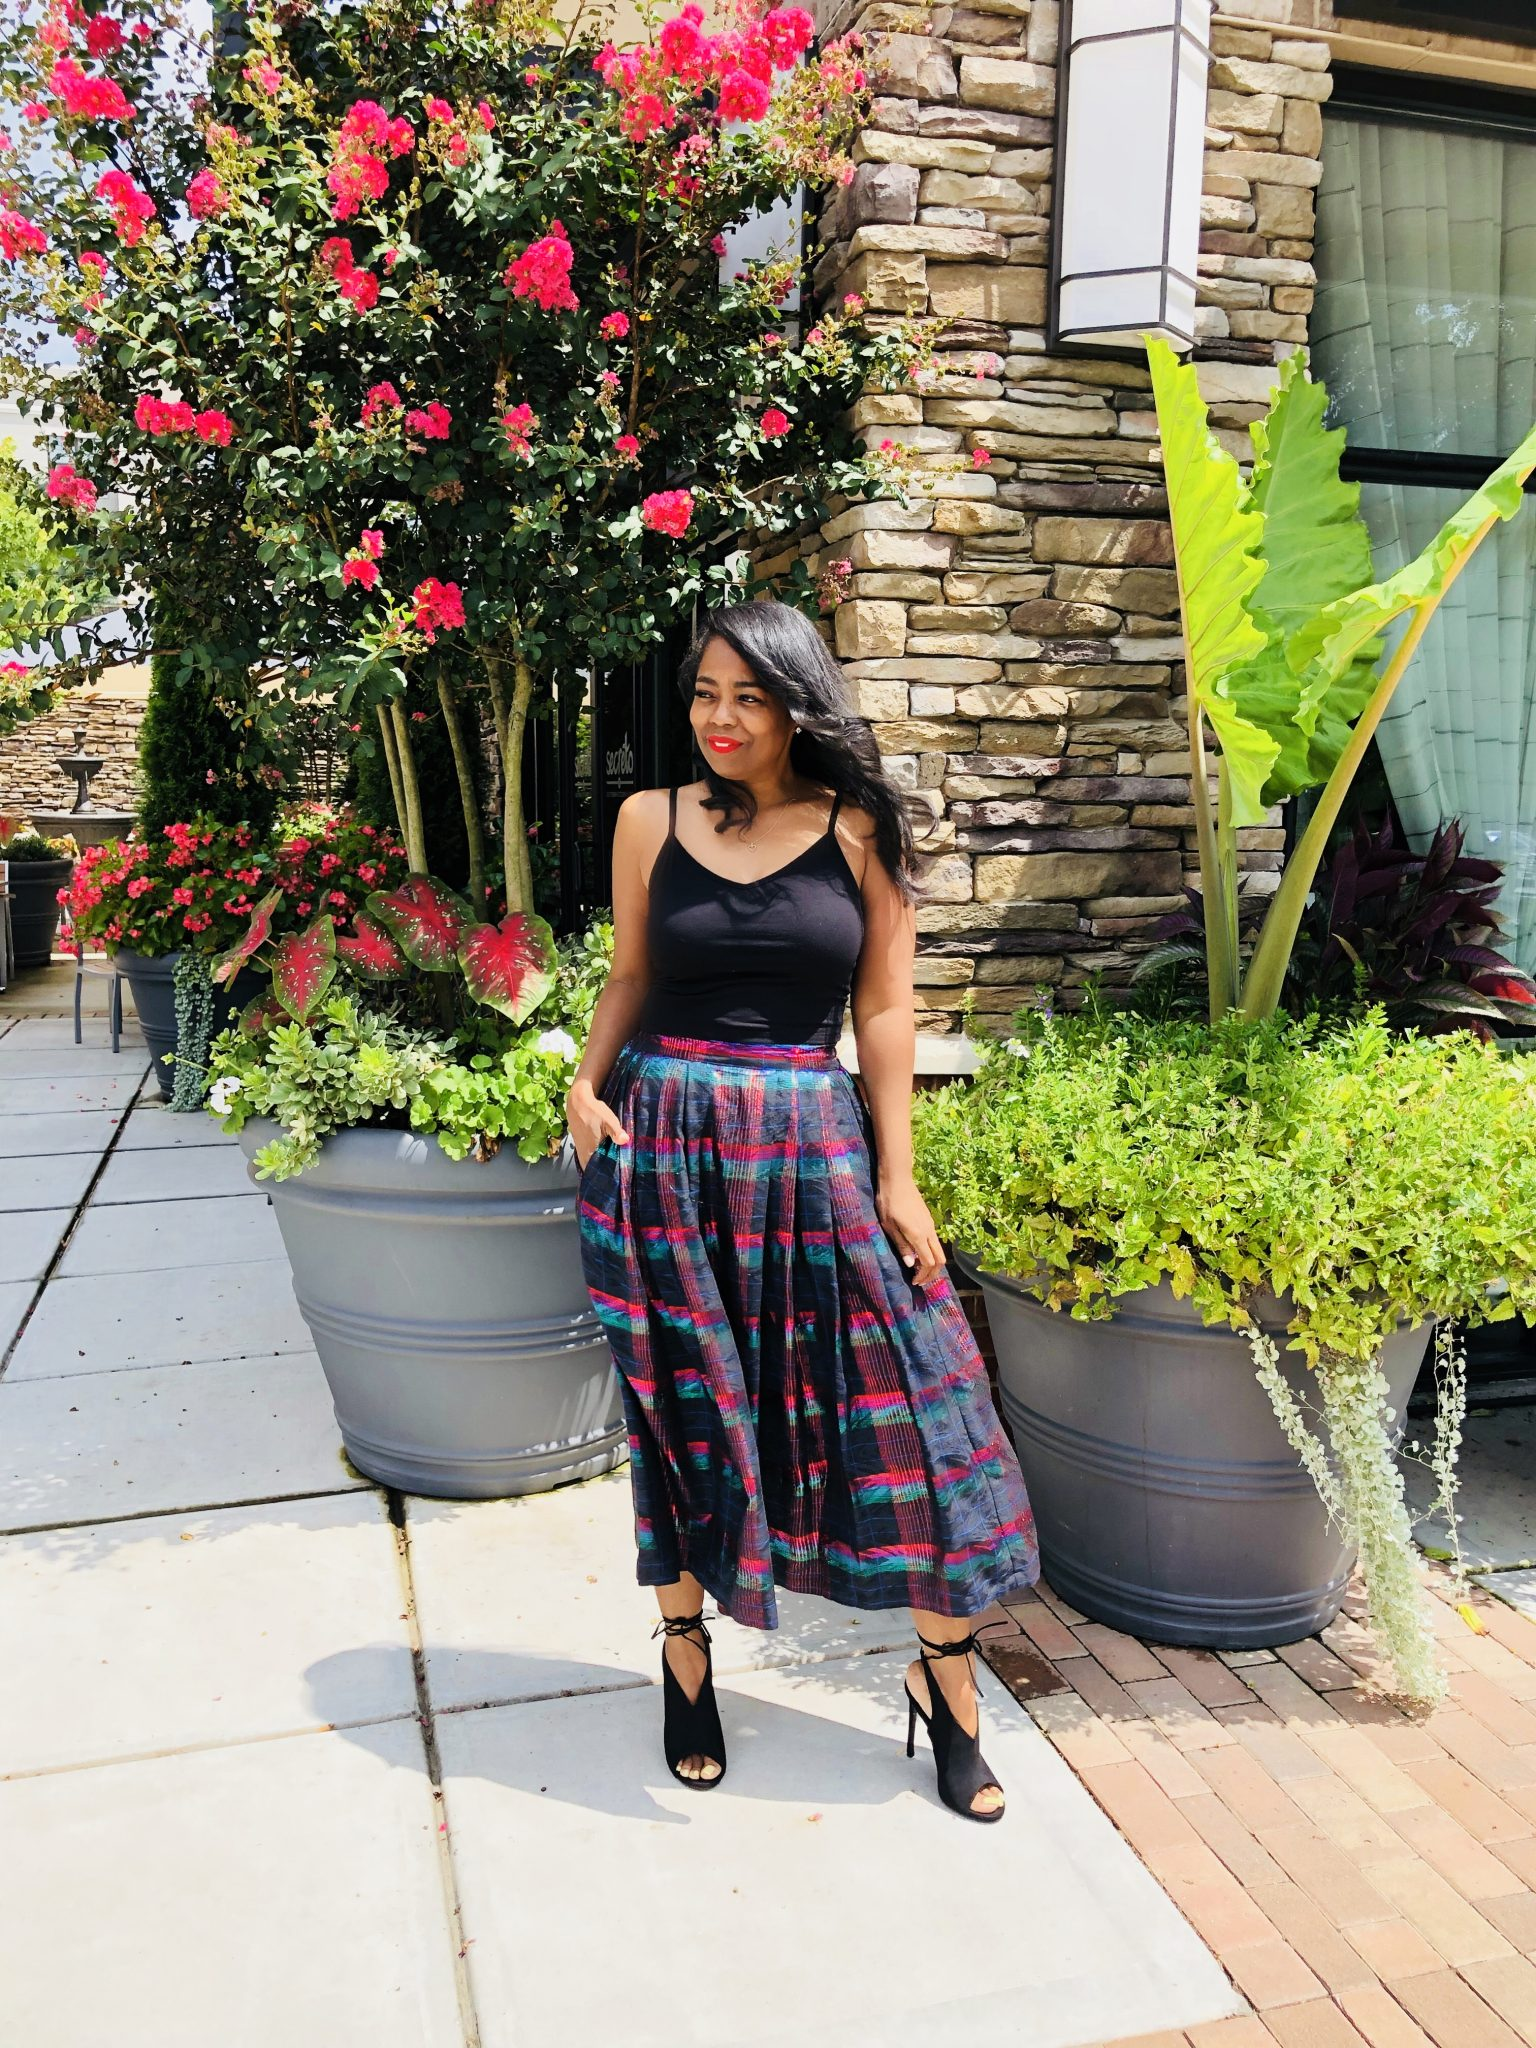 My Style: House Of Layllah Pleated Skirt